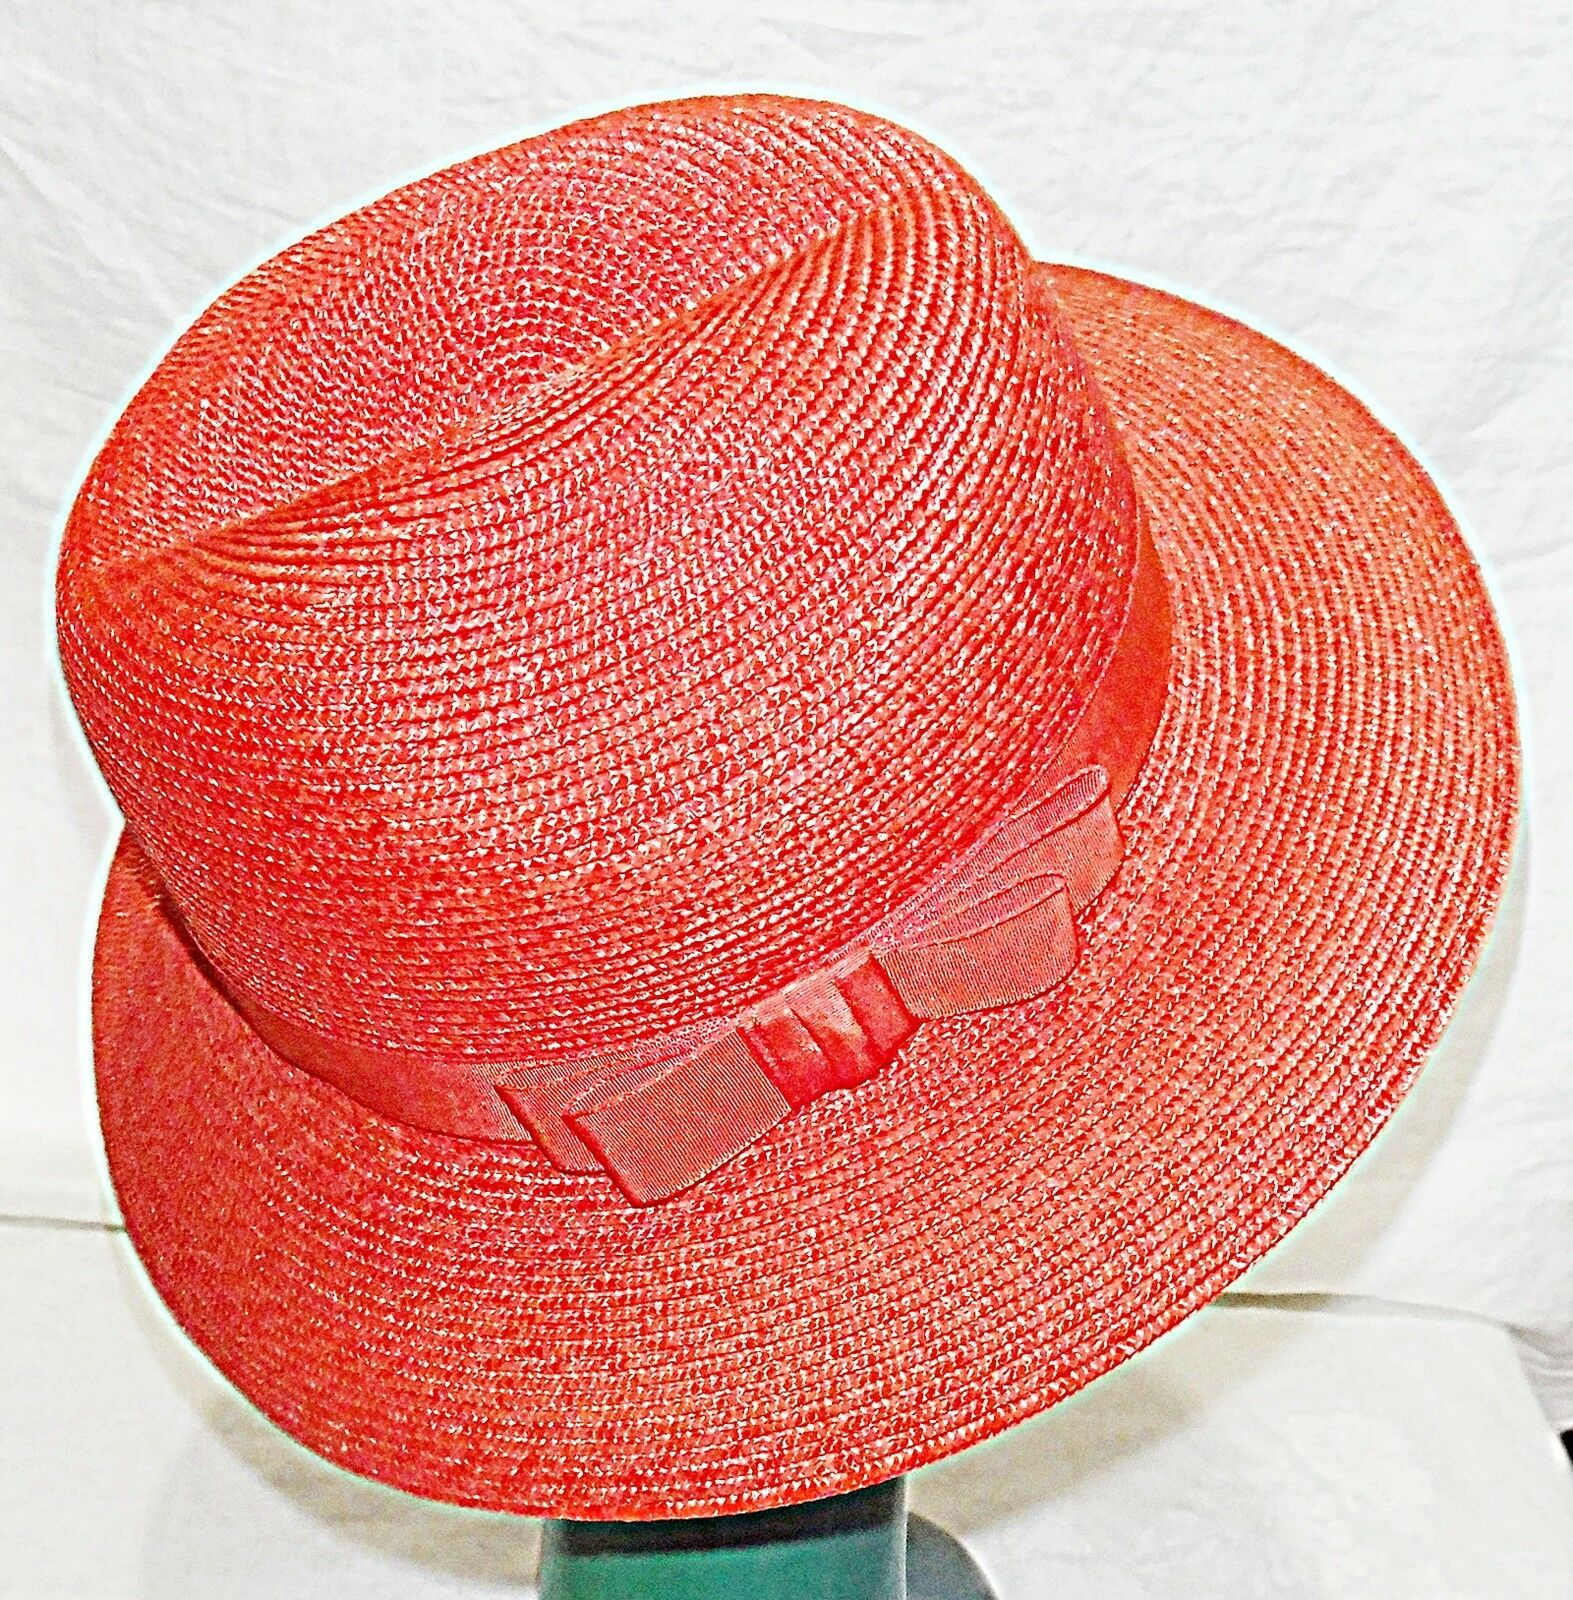 *GORGEOUS LADIES TRILBY IN HOT CORAL ORANGE VIBRANT CHIC HAT STRAW CORDED BAND